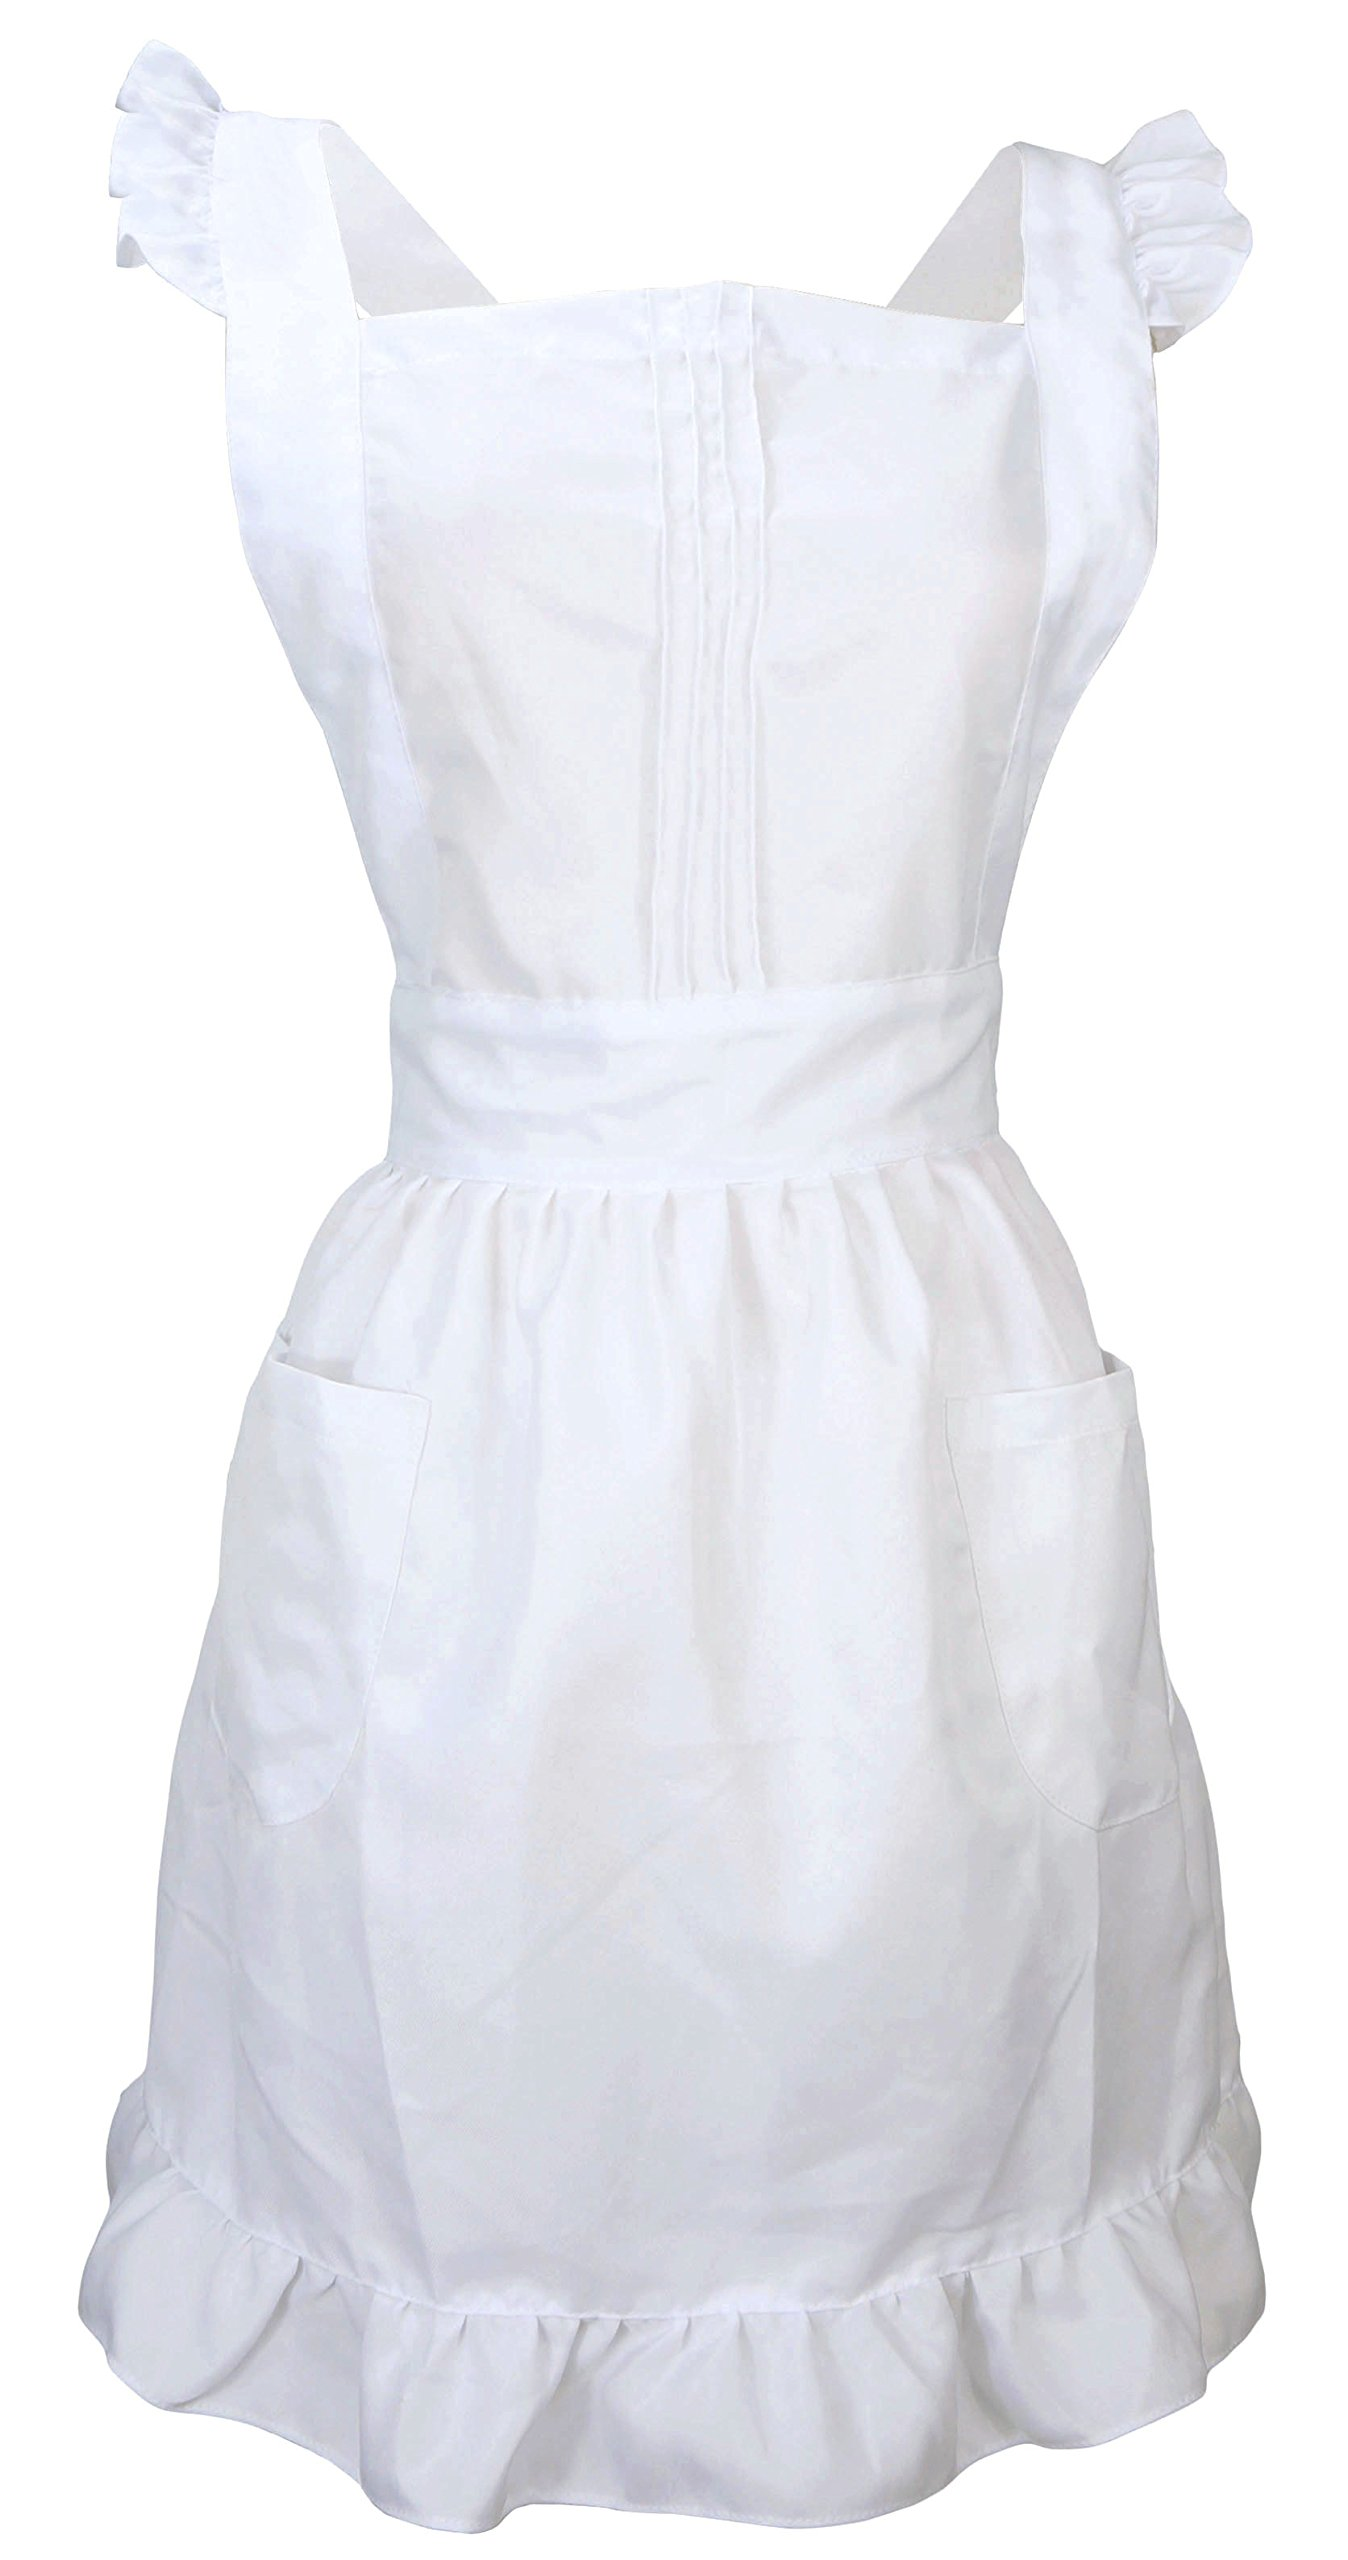 LilMents Retro Adjustable Ruffle Apron with Pockets, Small to Plus Size Ladies (White) by LilMents